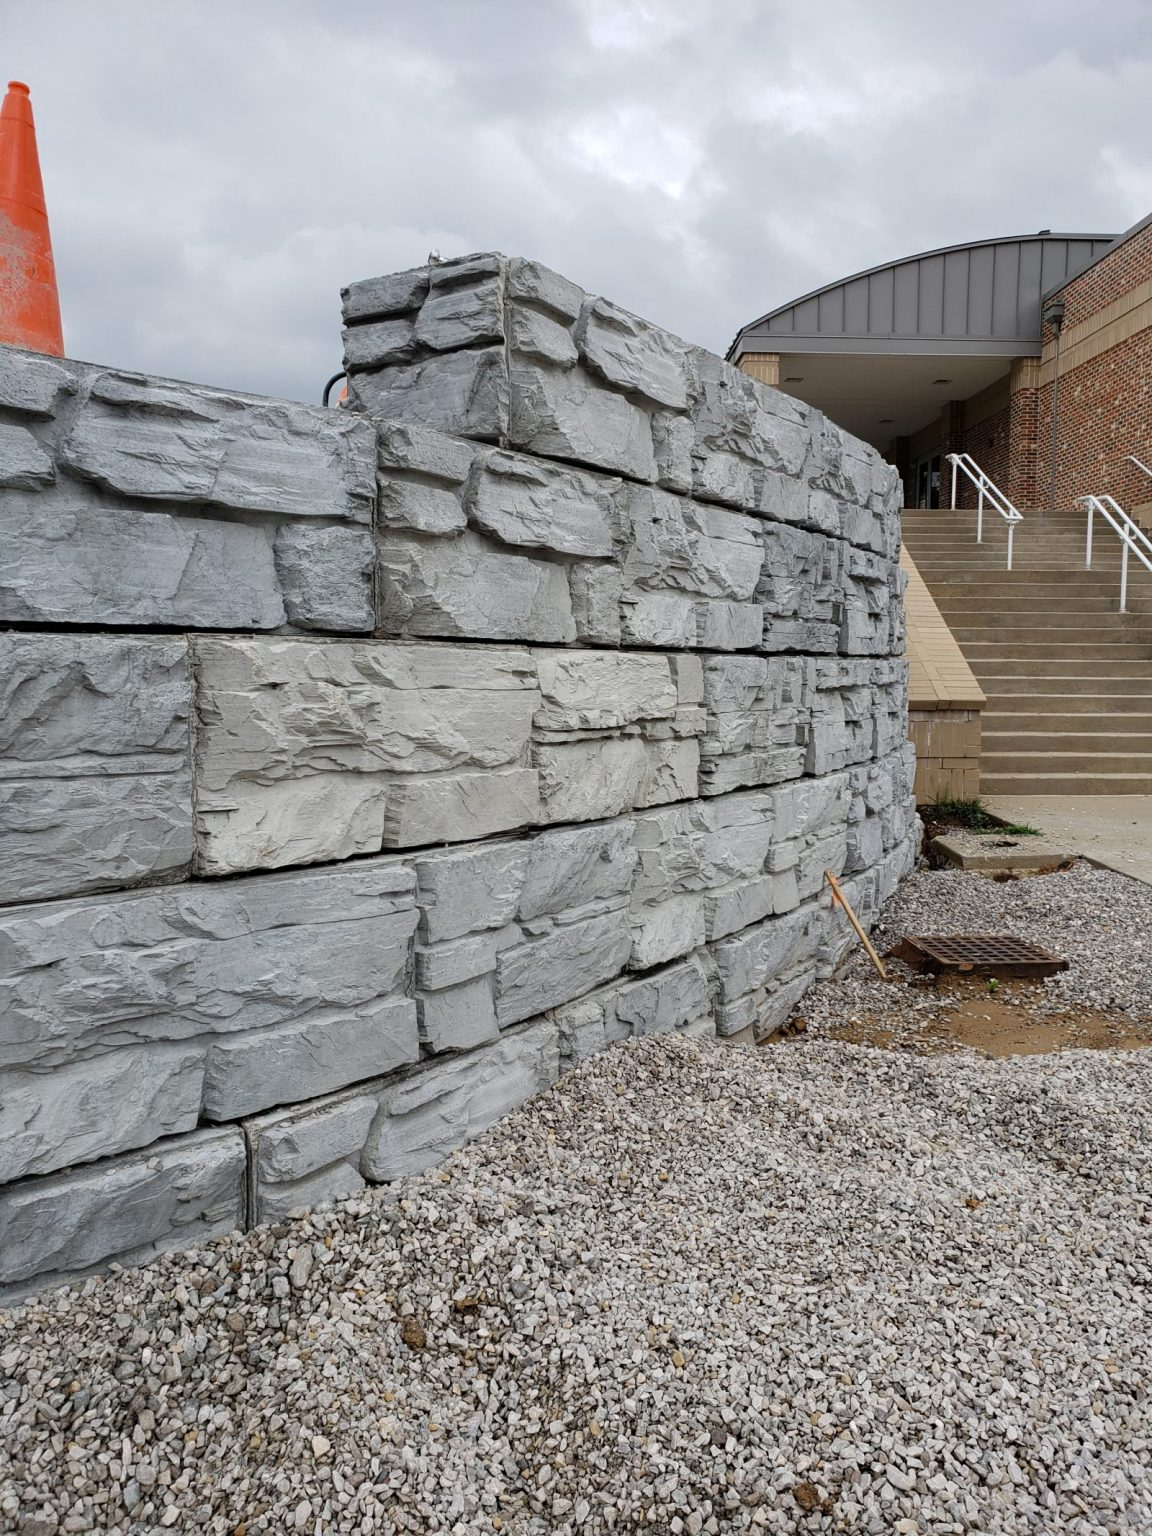 Curved MaxumStone wall with step-up feature at the top of the wall. Commercial retaining wall project.